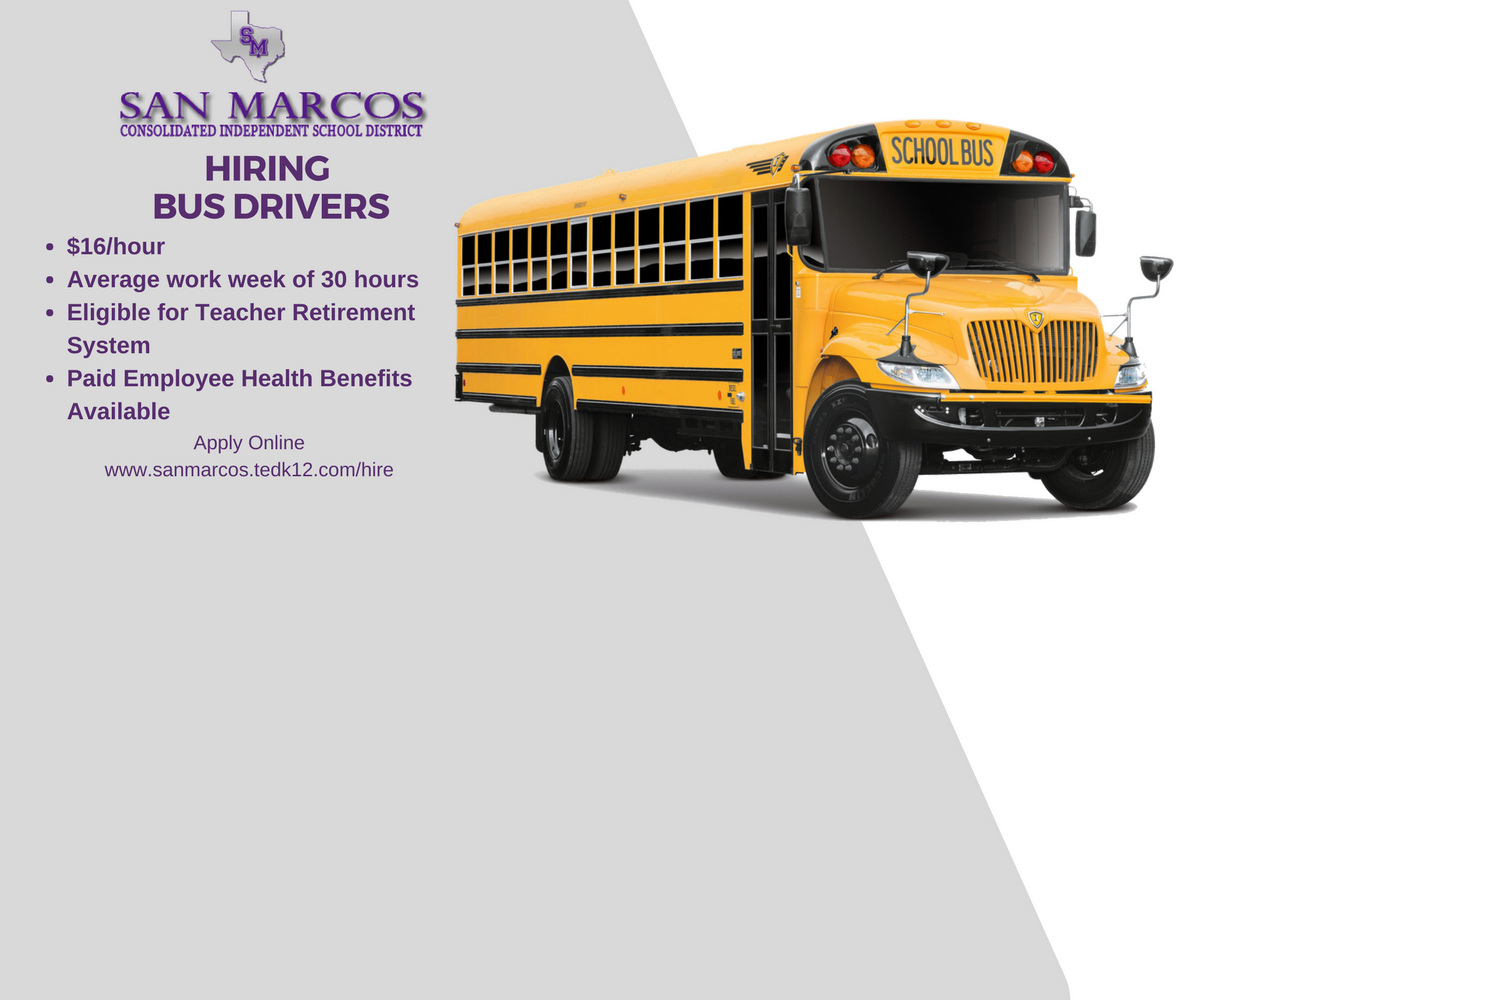 San Marcos High School / Homepage